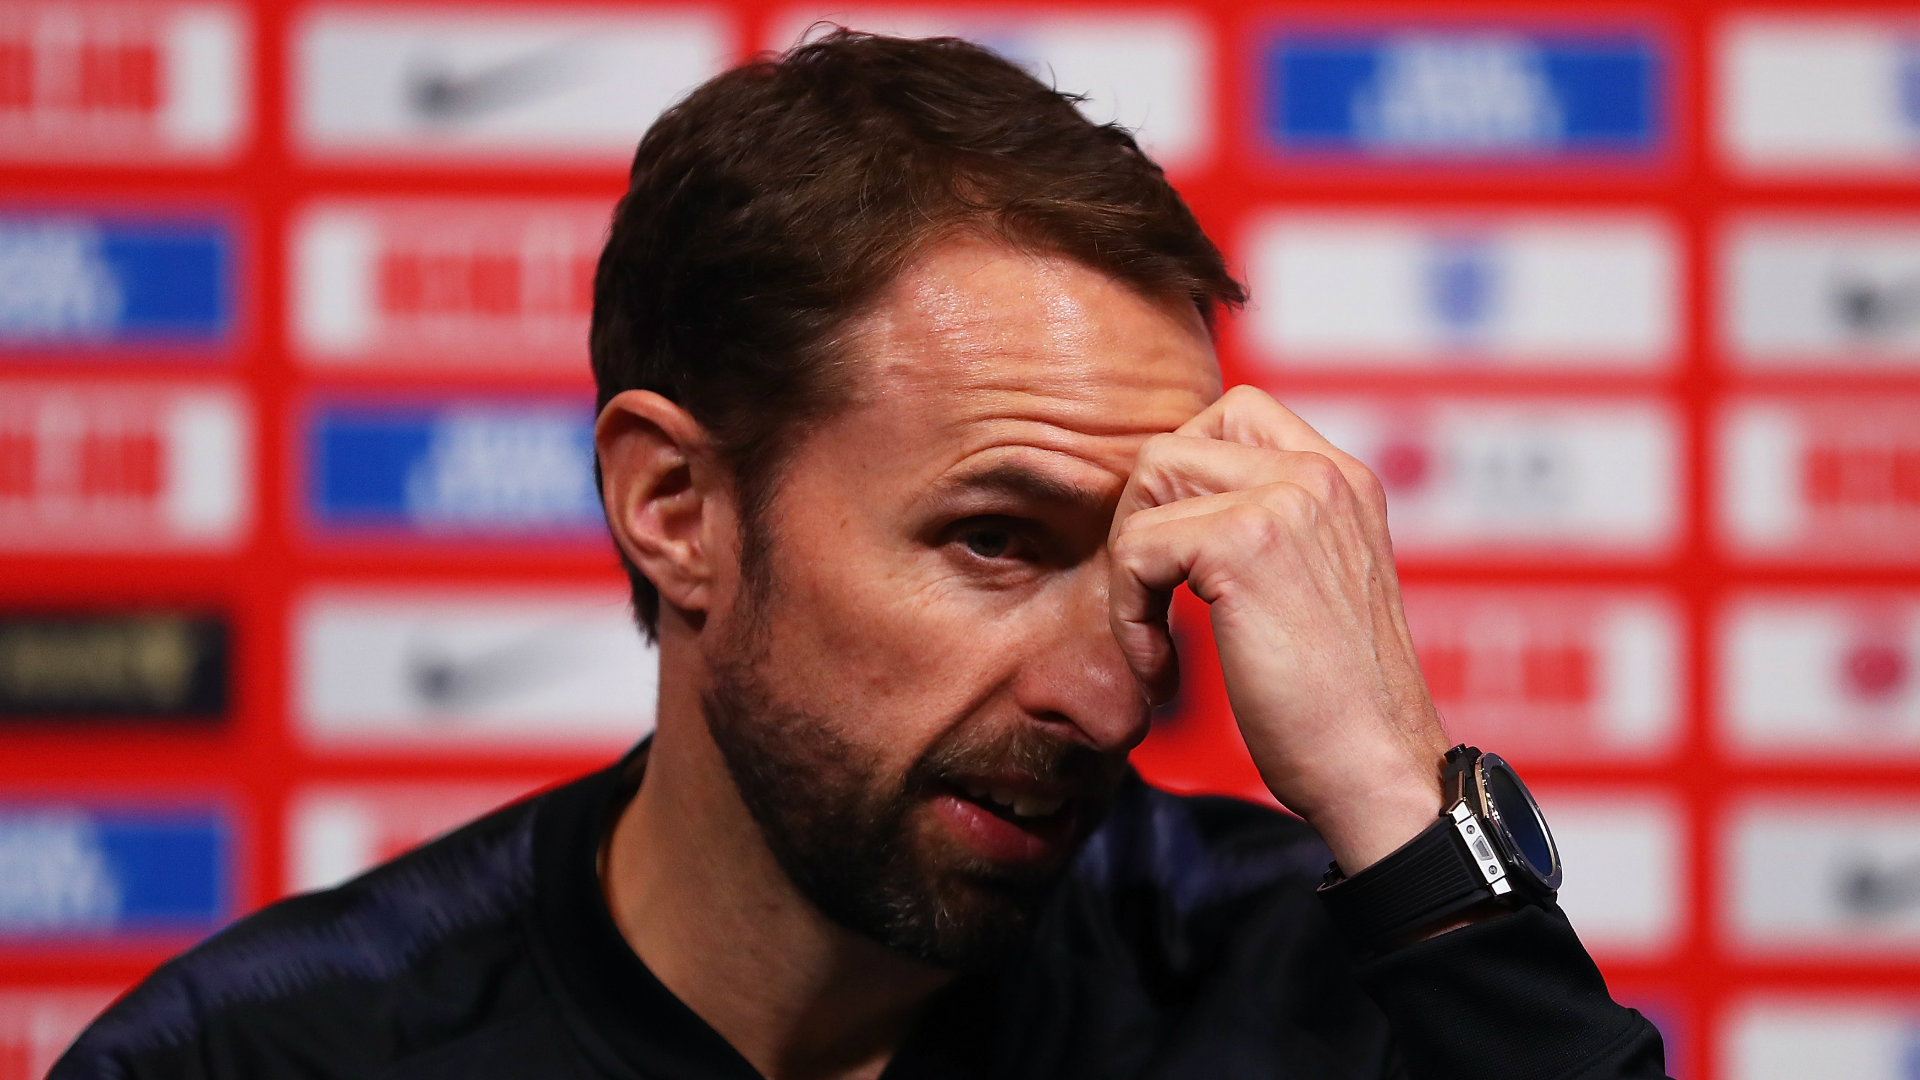 England to play Netherlands in UEFA Nations League semifinals Portugal face Switzerland